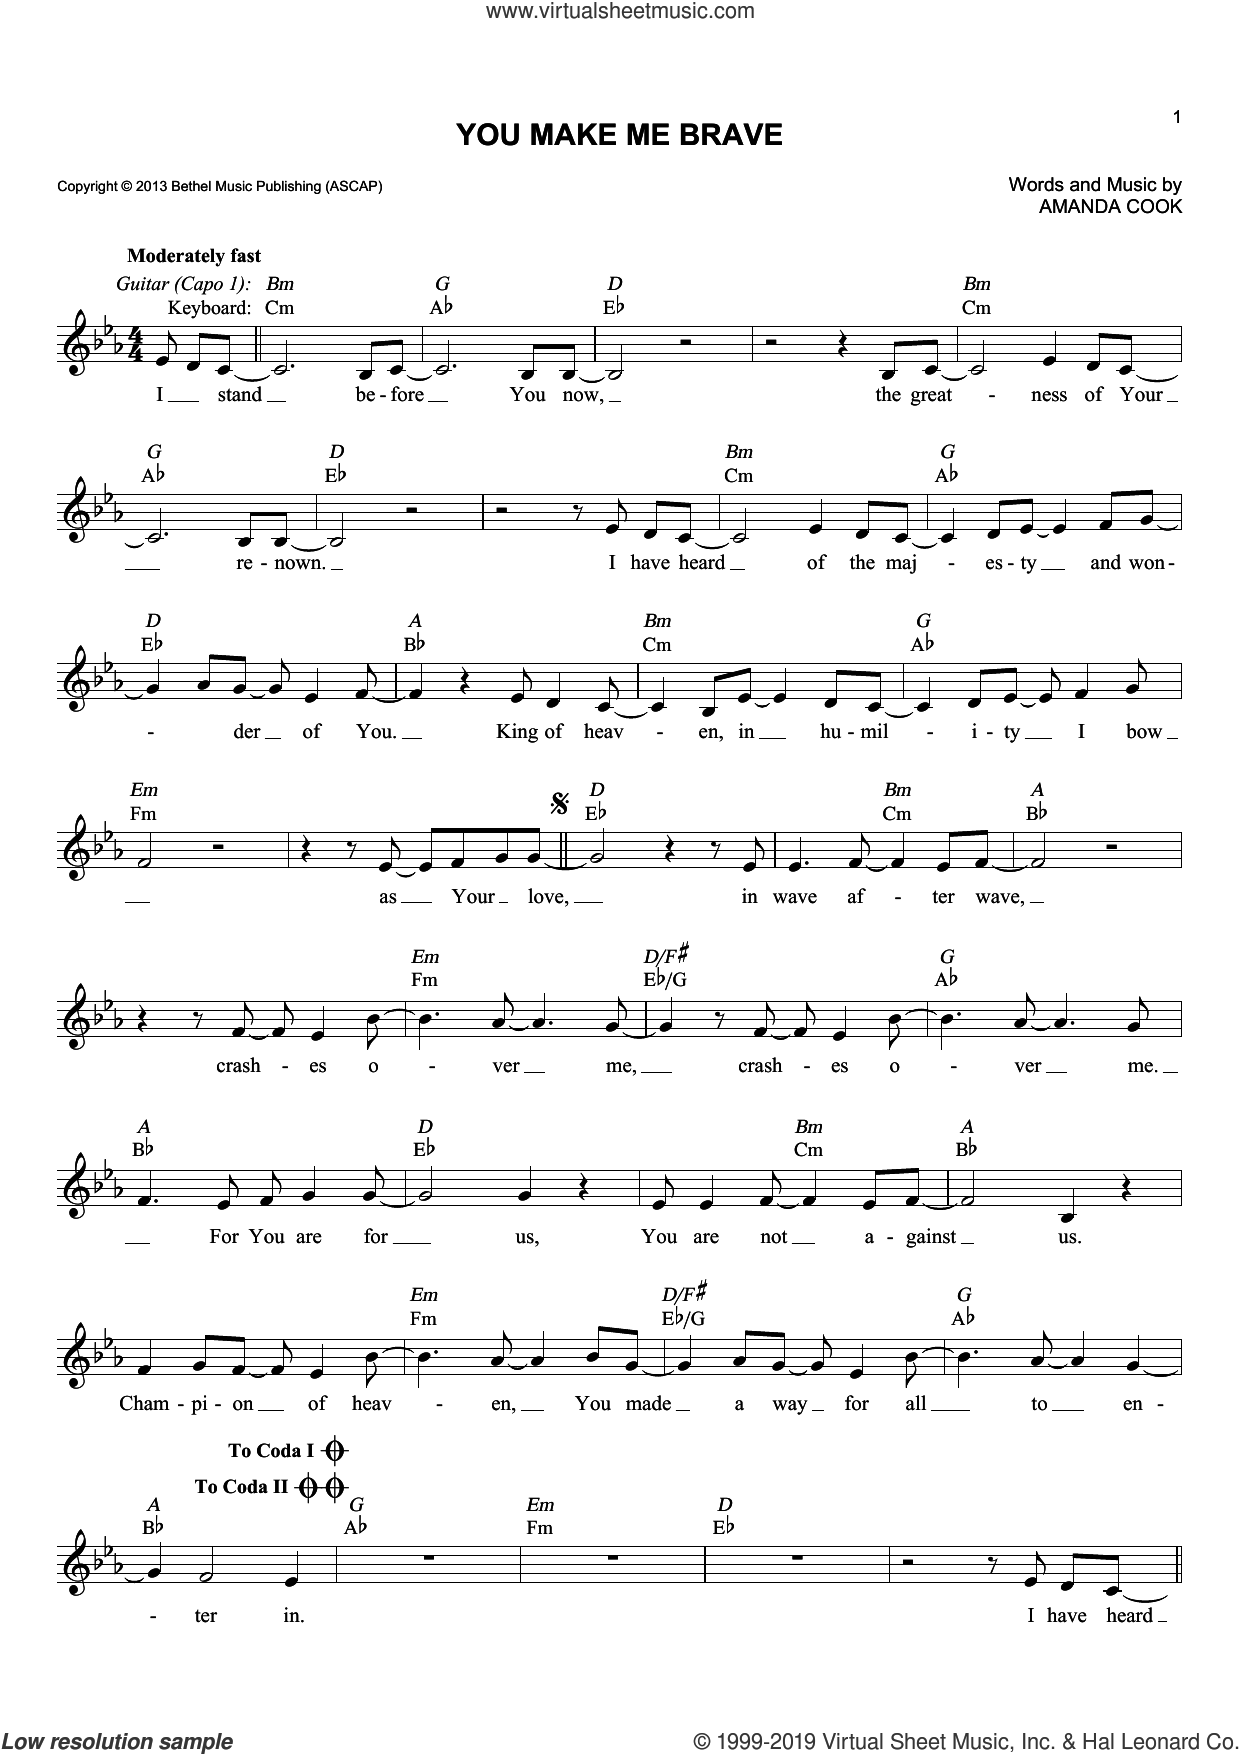 You Make Me Brave sheet music for voice and other instruments (fake book) by Bethel Music and Amanda Cook, intermediate skill level